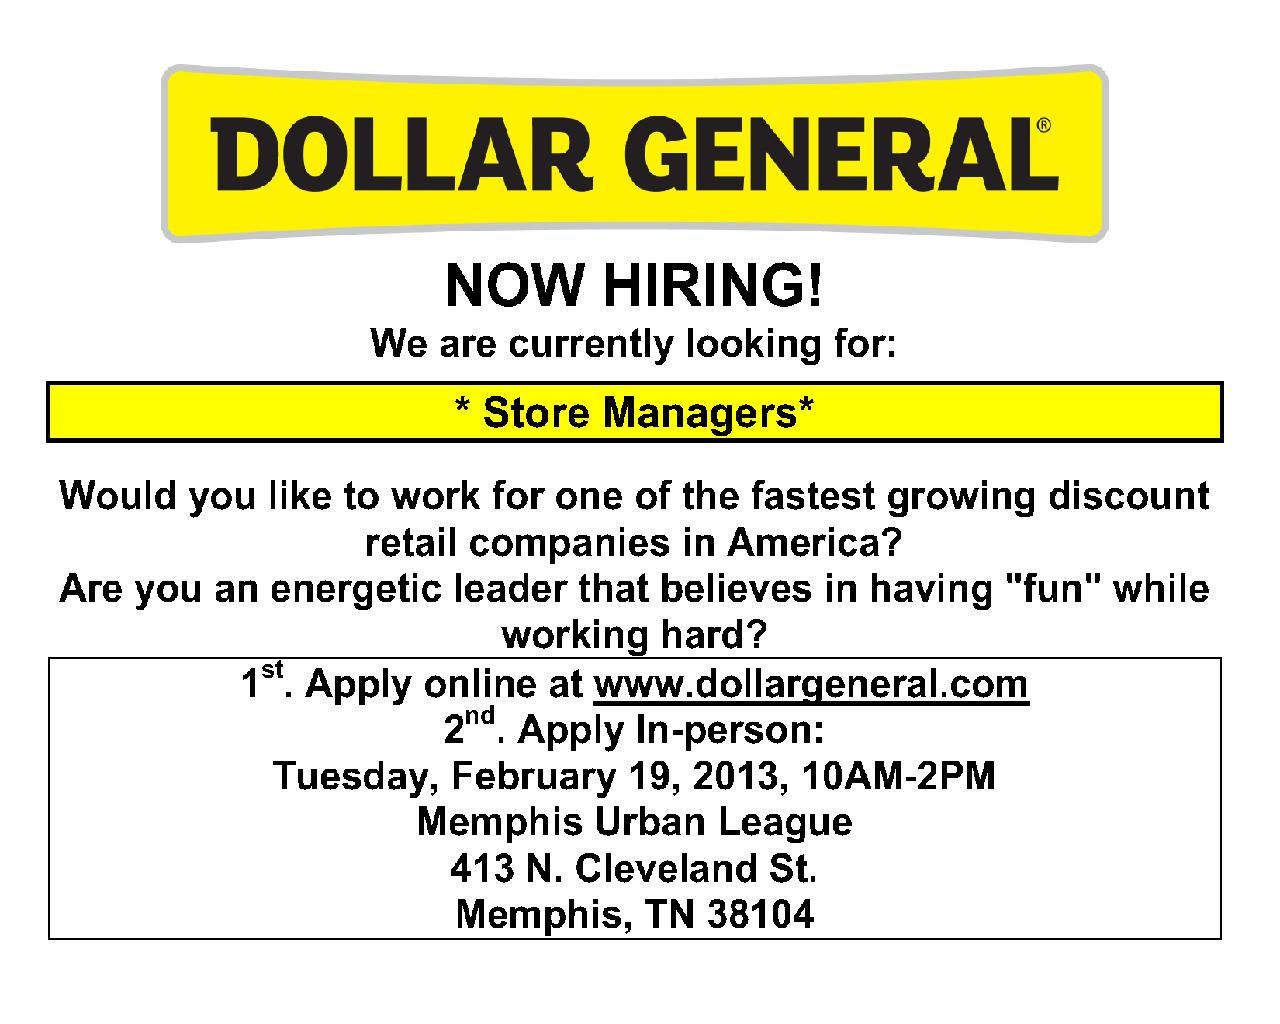 Dollar General Job Fair at Memphis Urban League Flyer 020413 (2)_1